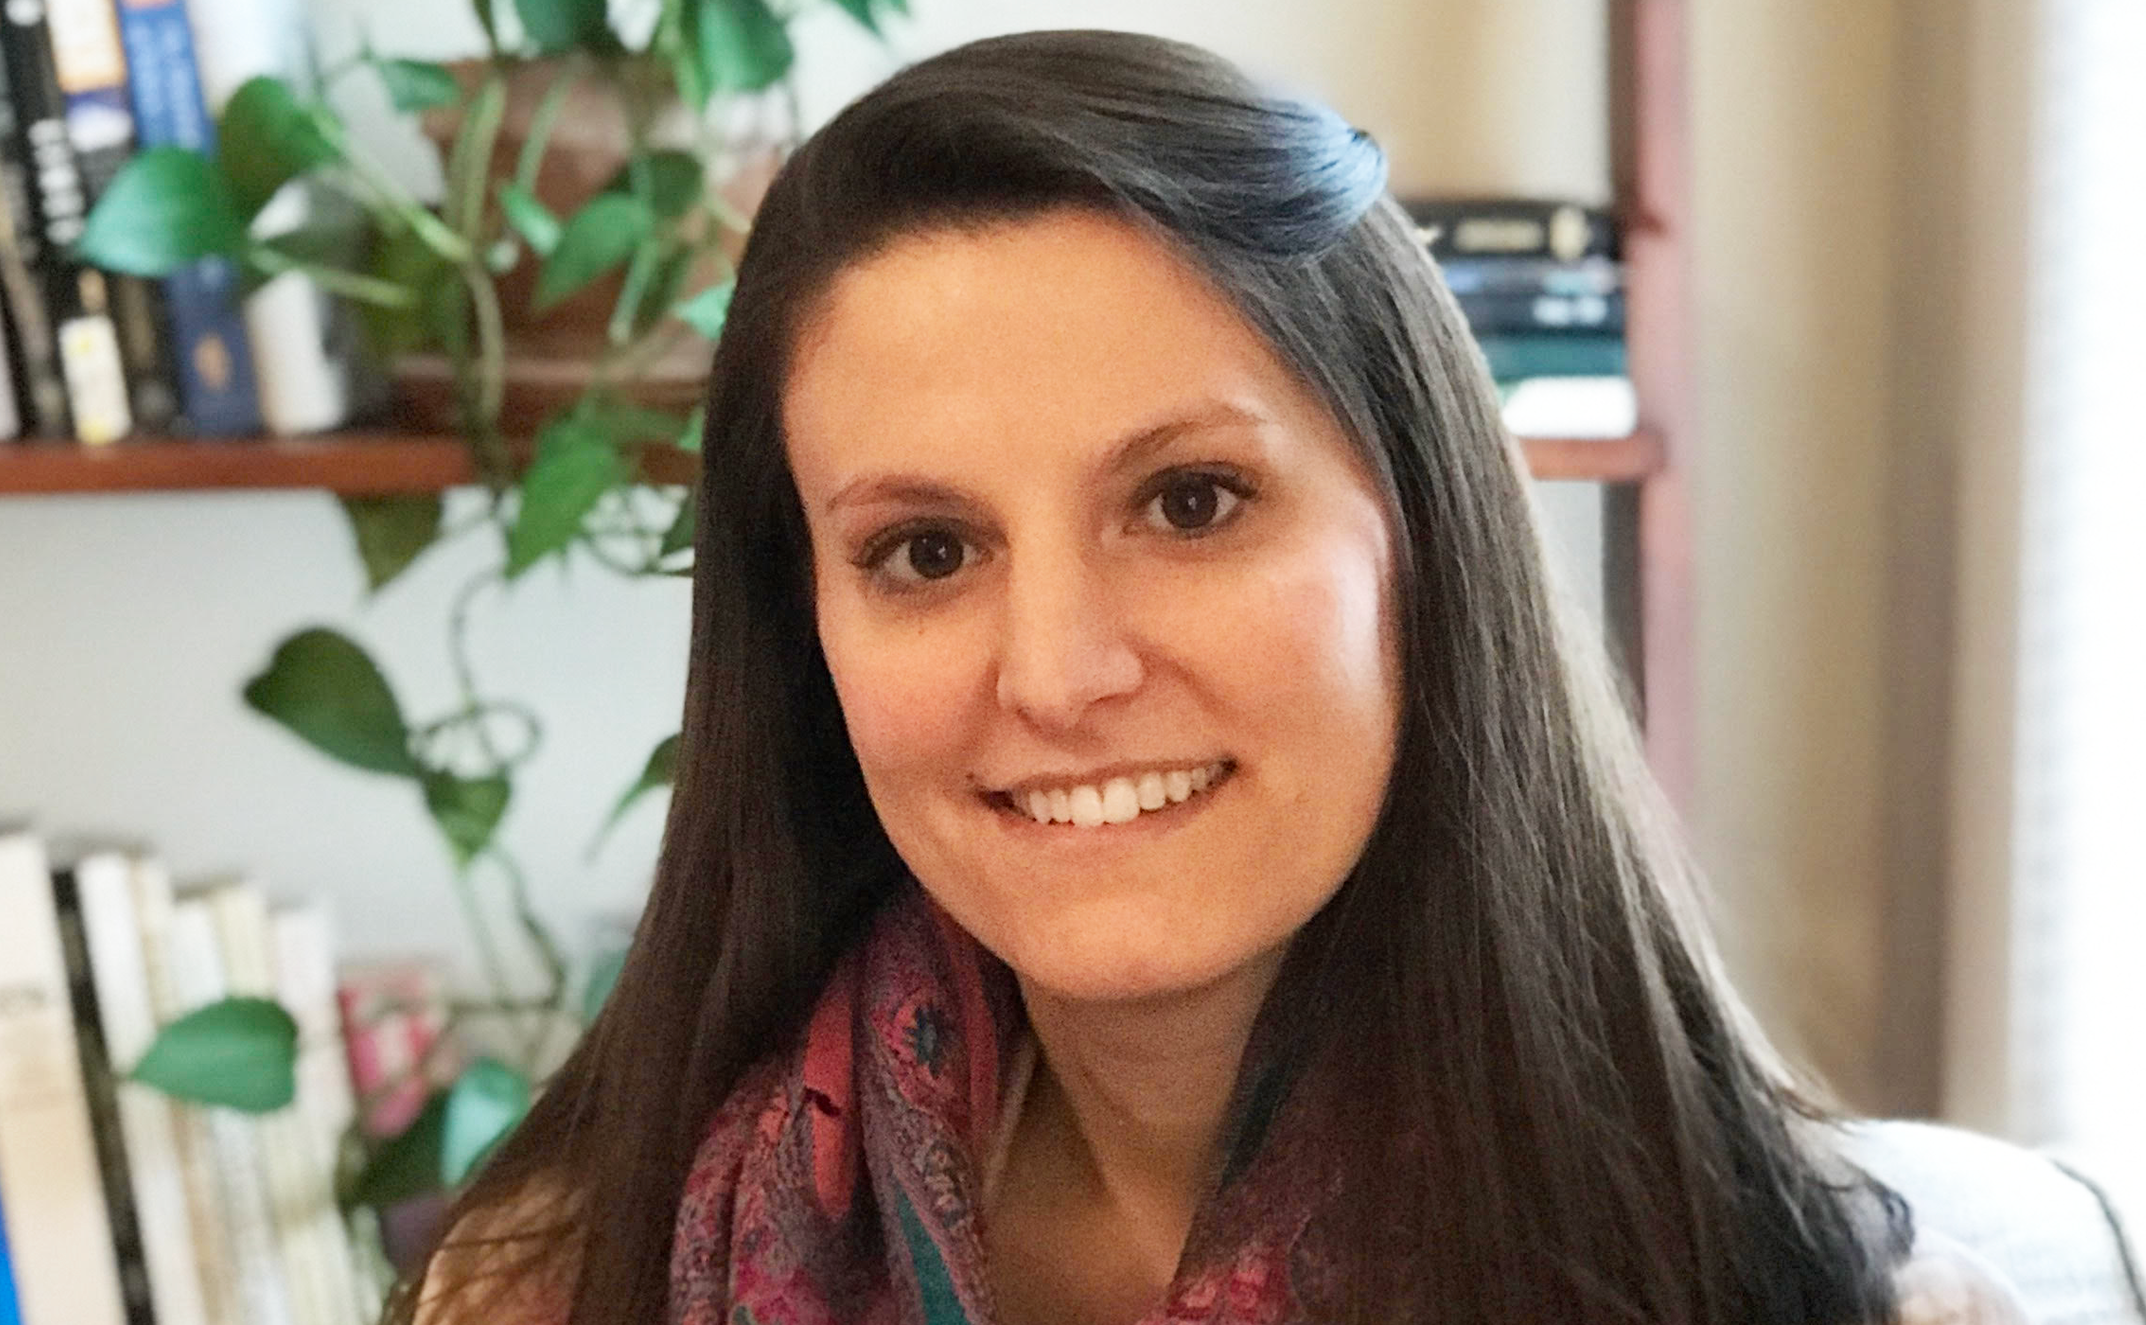 Lauren Gorman, LPC  is a Licensed Professional Counselor and graduated from Seton Hall University with a Master's degree in Professional Counseling. She has advanced clinical training in infertility and prenatal/postpartum counseling.   Learn more